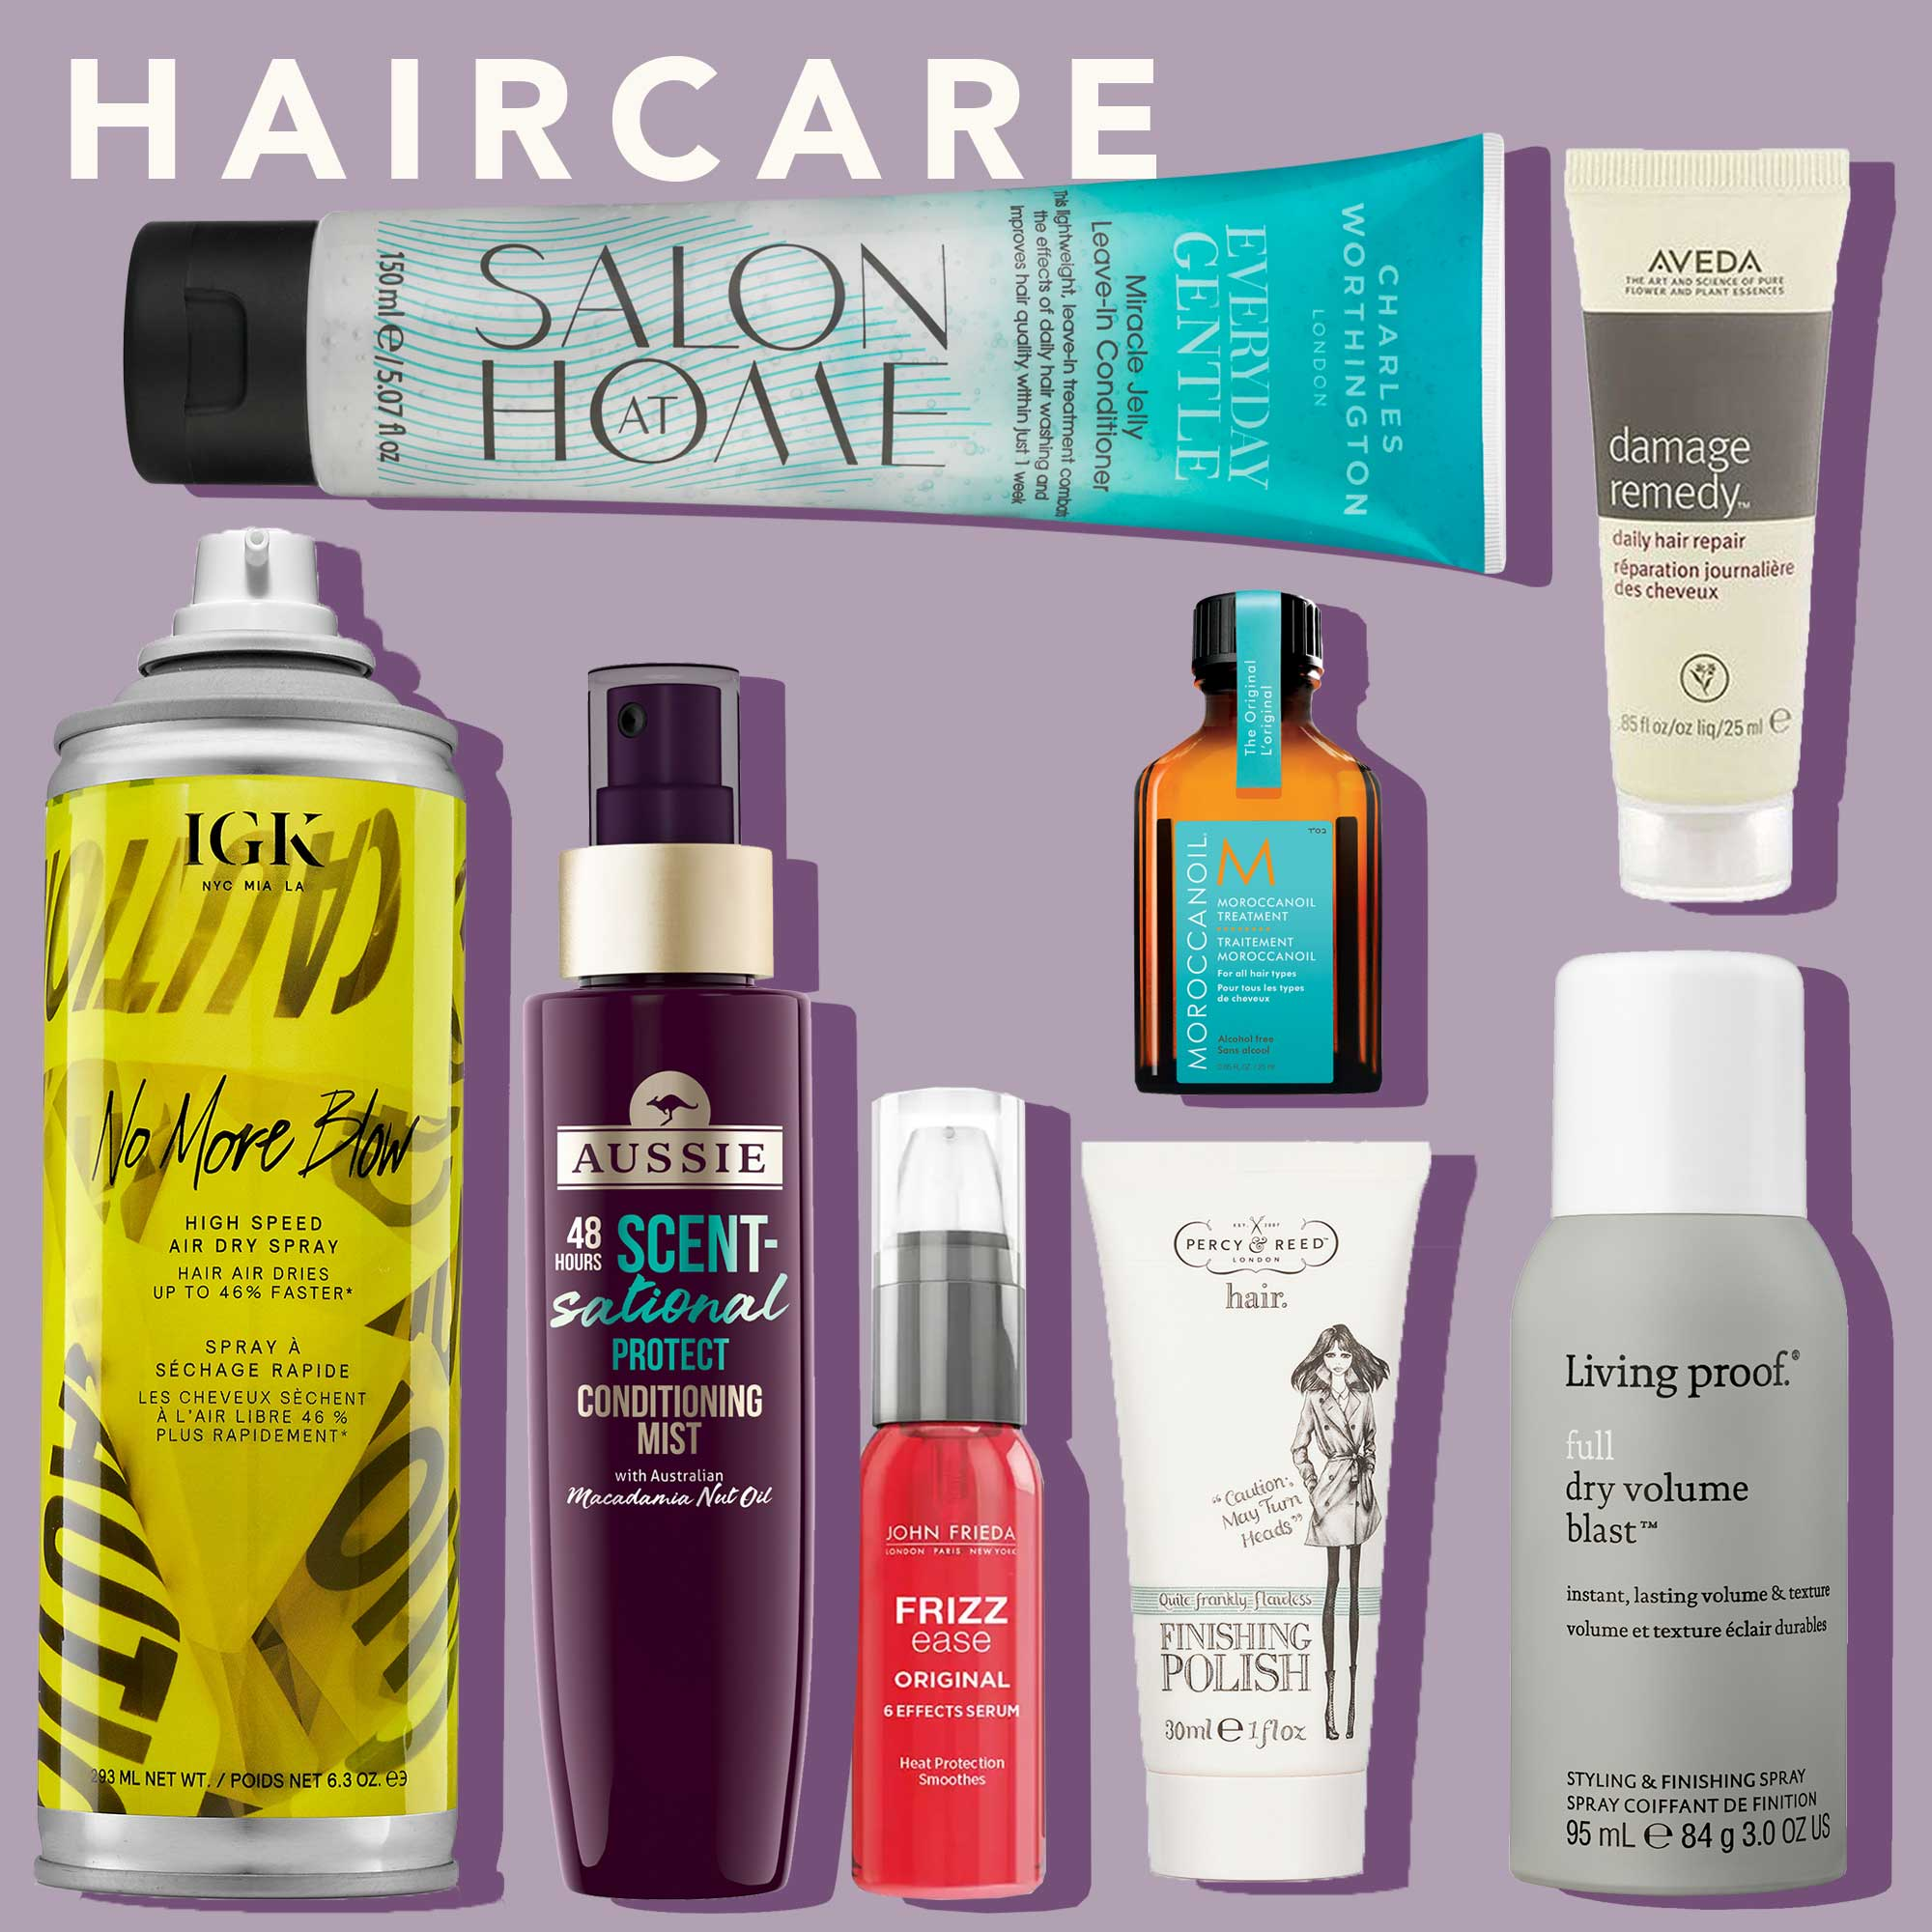 STS-CATEGORIES-FLATLAYS-HAIR